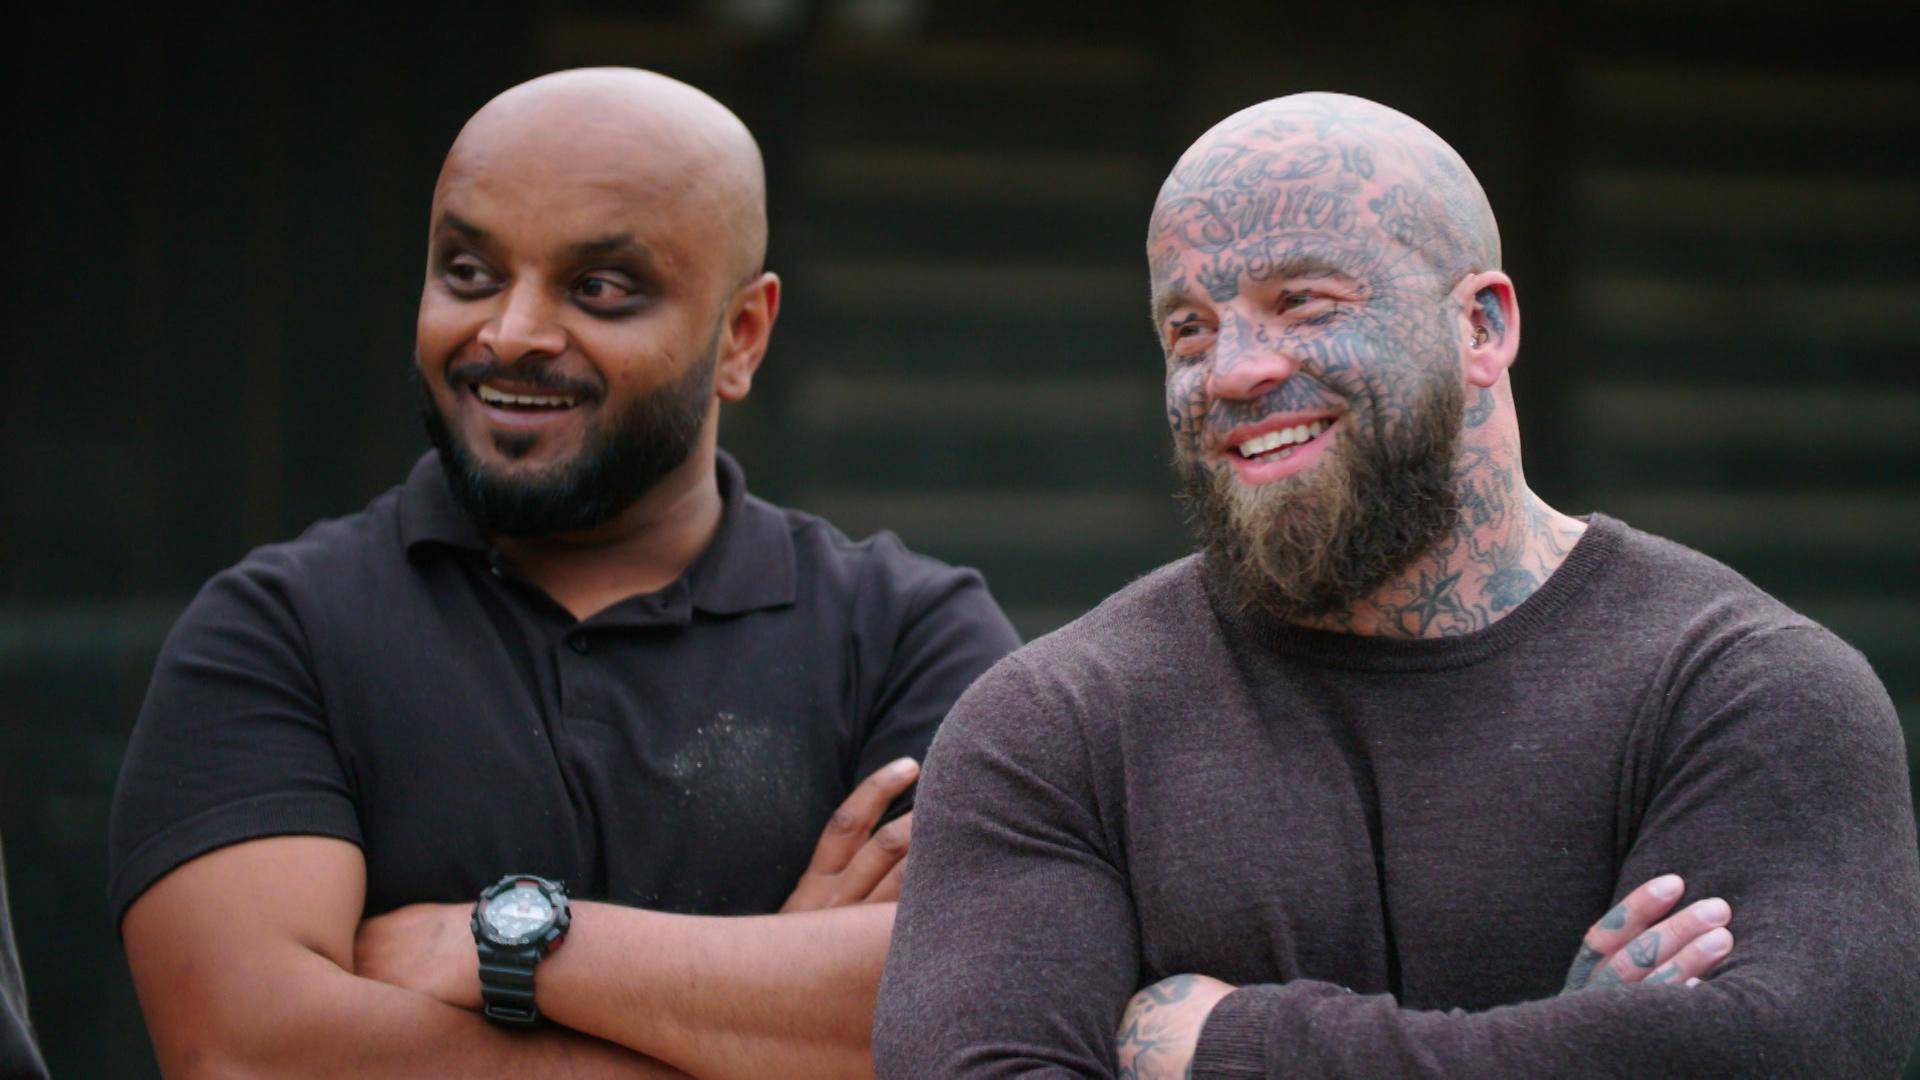 'The Chop' is axed after tattoo controversy